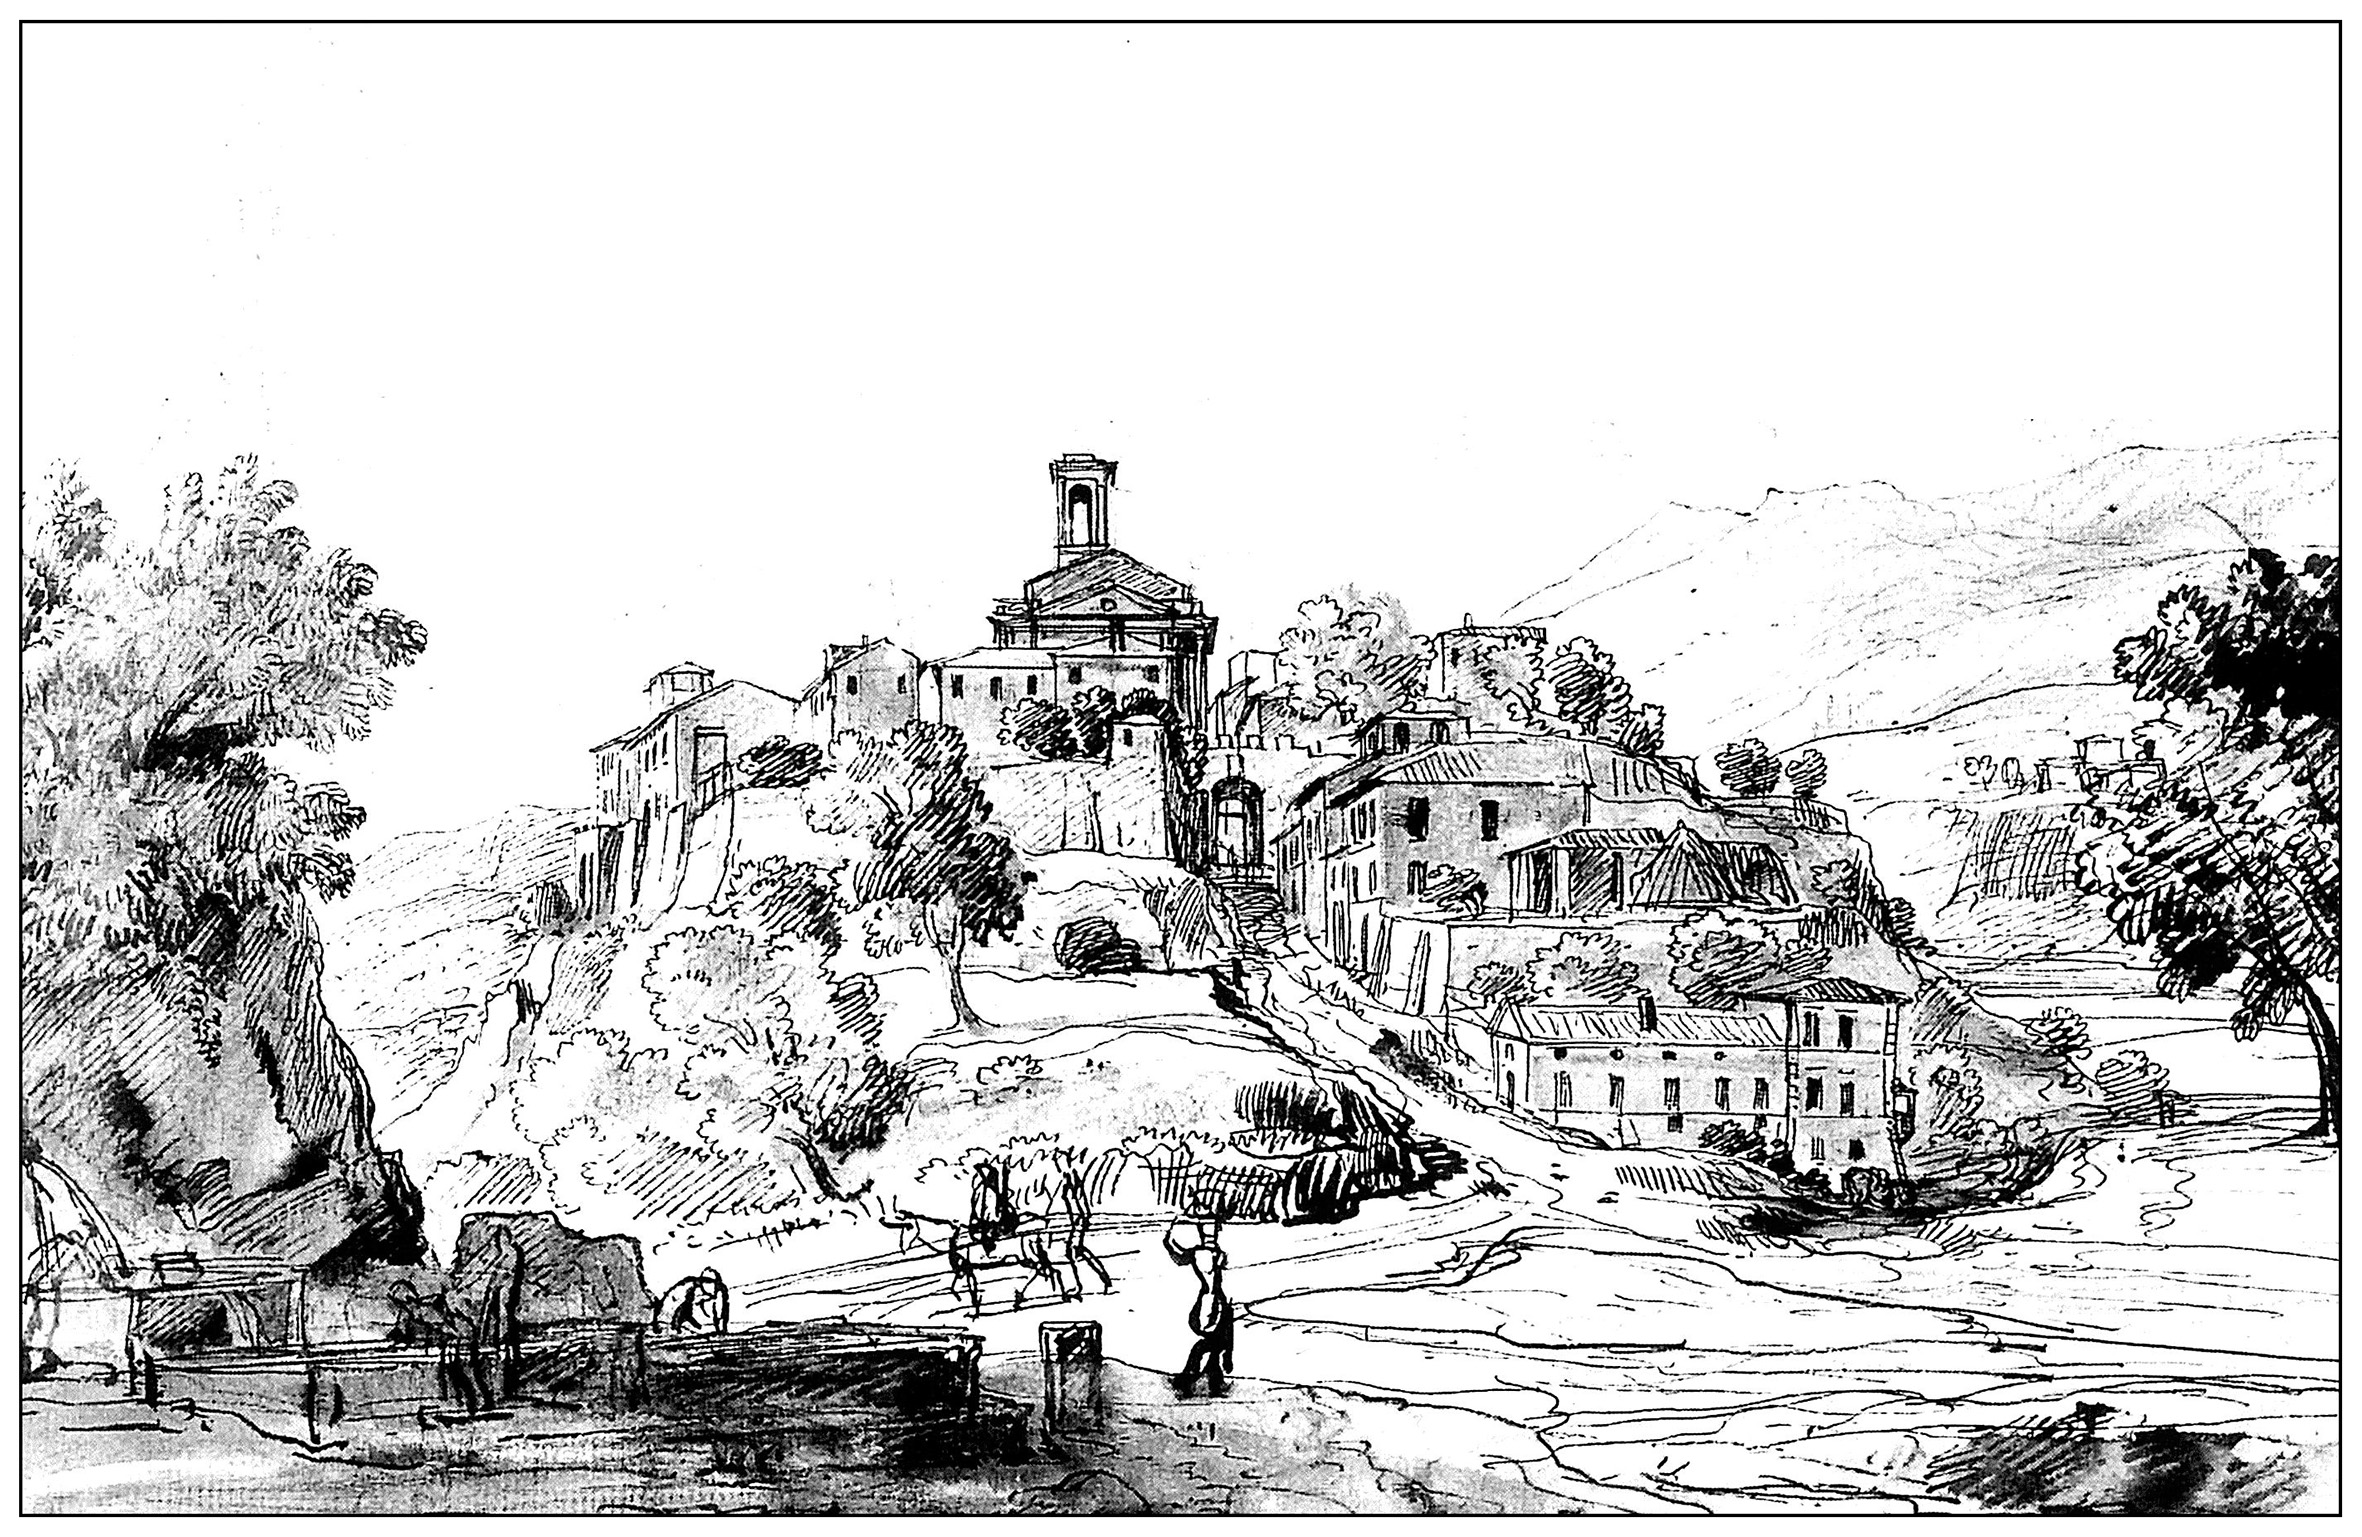 Engraving Of A French Village 18th Century